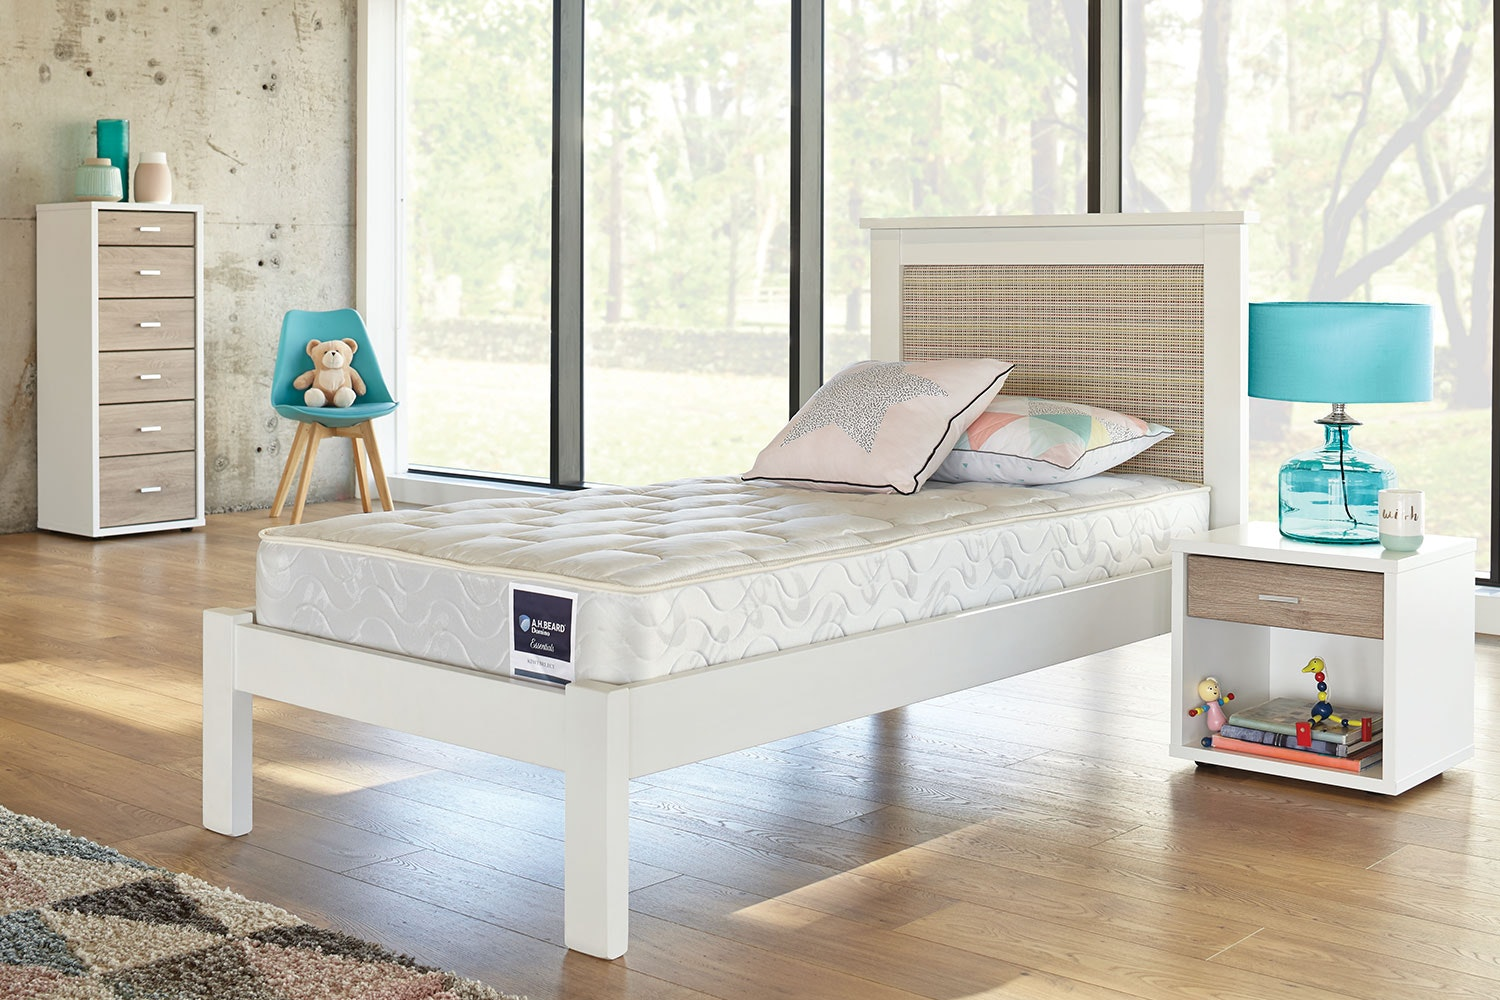 Kiwi Select Single Mattress by A.H. Beard